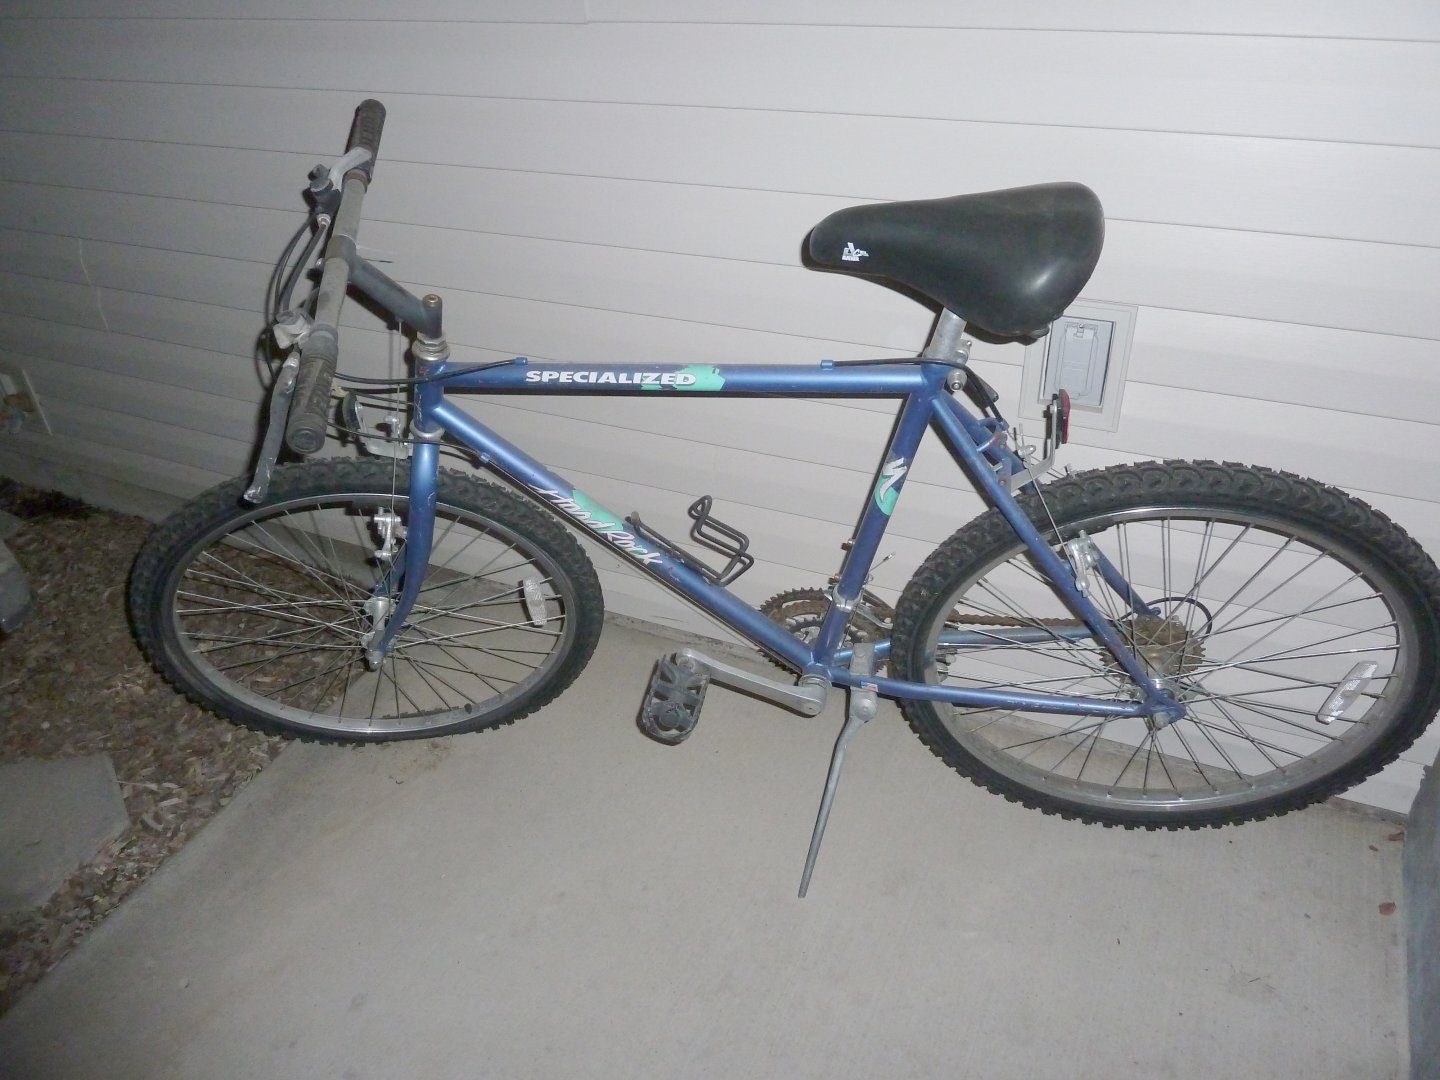 DIY Electric Bike: DIY Bike for Conversion, Vintage 1980s ...